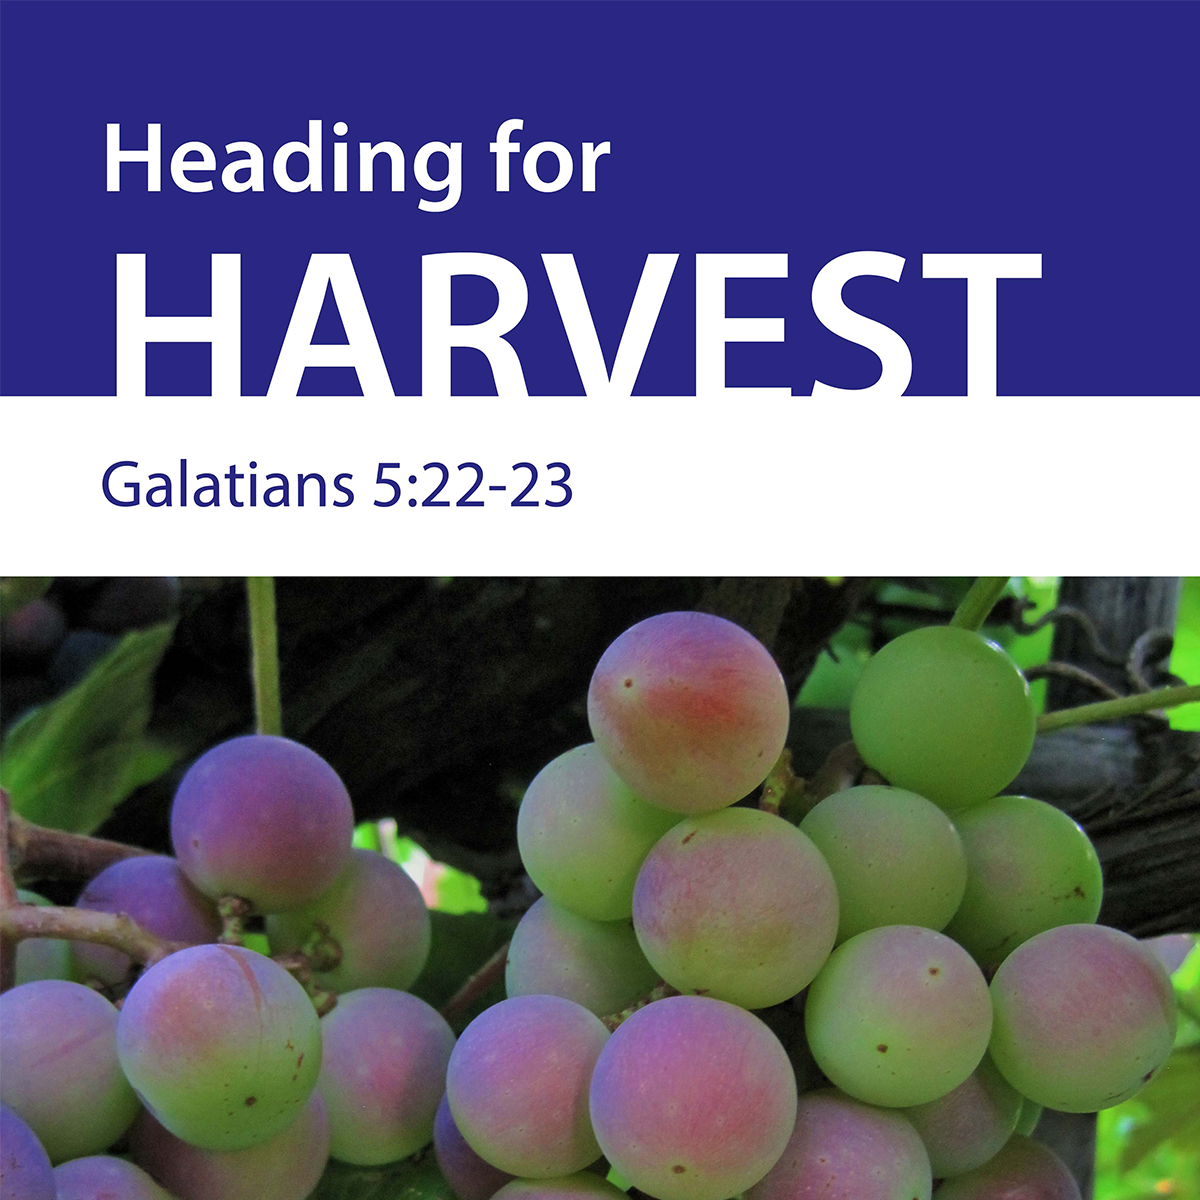 Heading for Harvest - New Release!